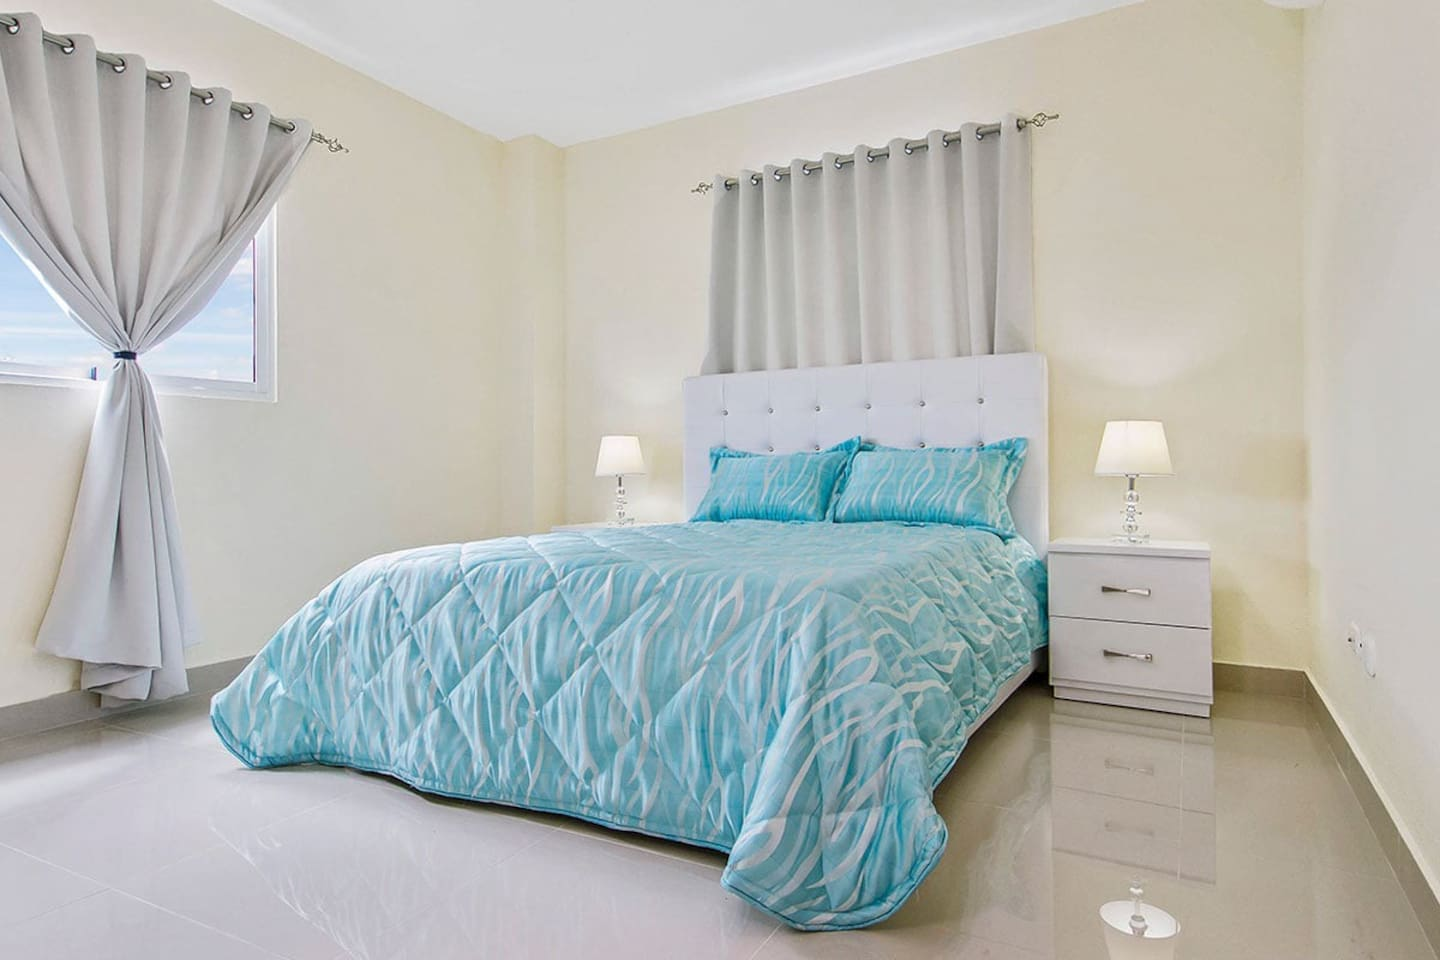 Both bedrooms feature a queen-size bed and include all linens and pillows